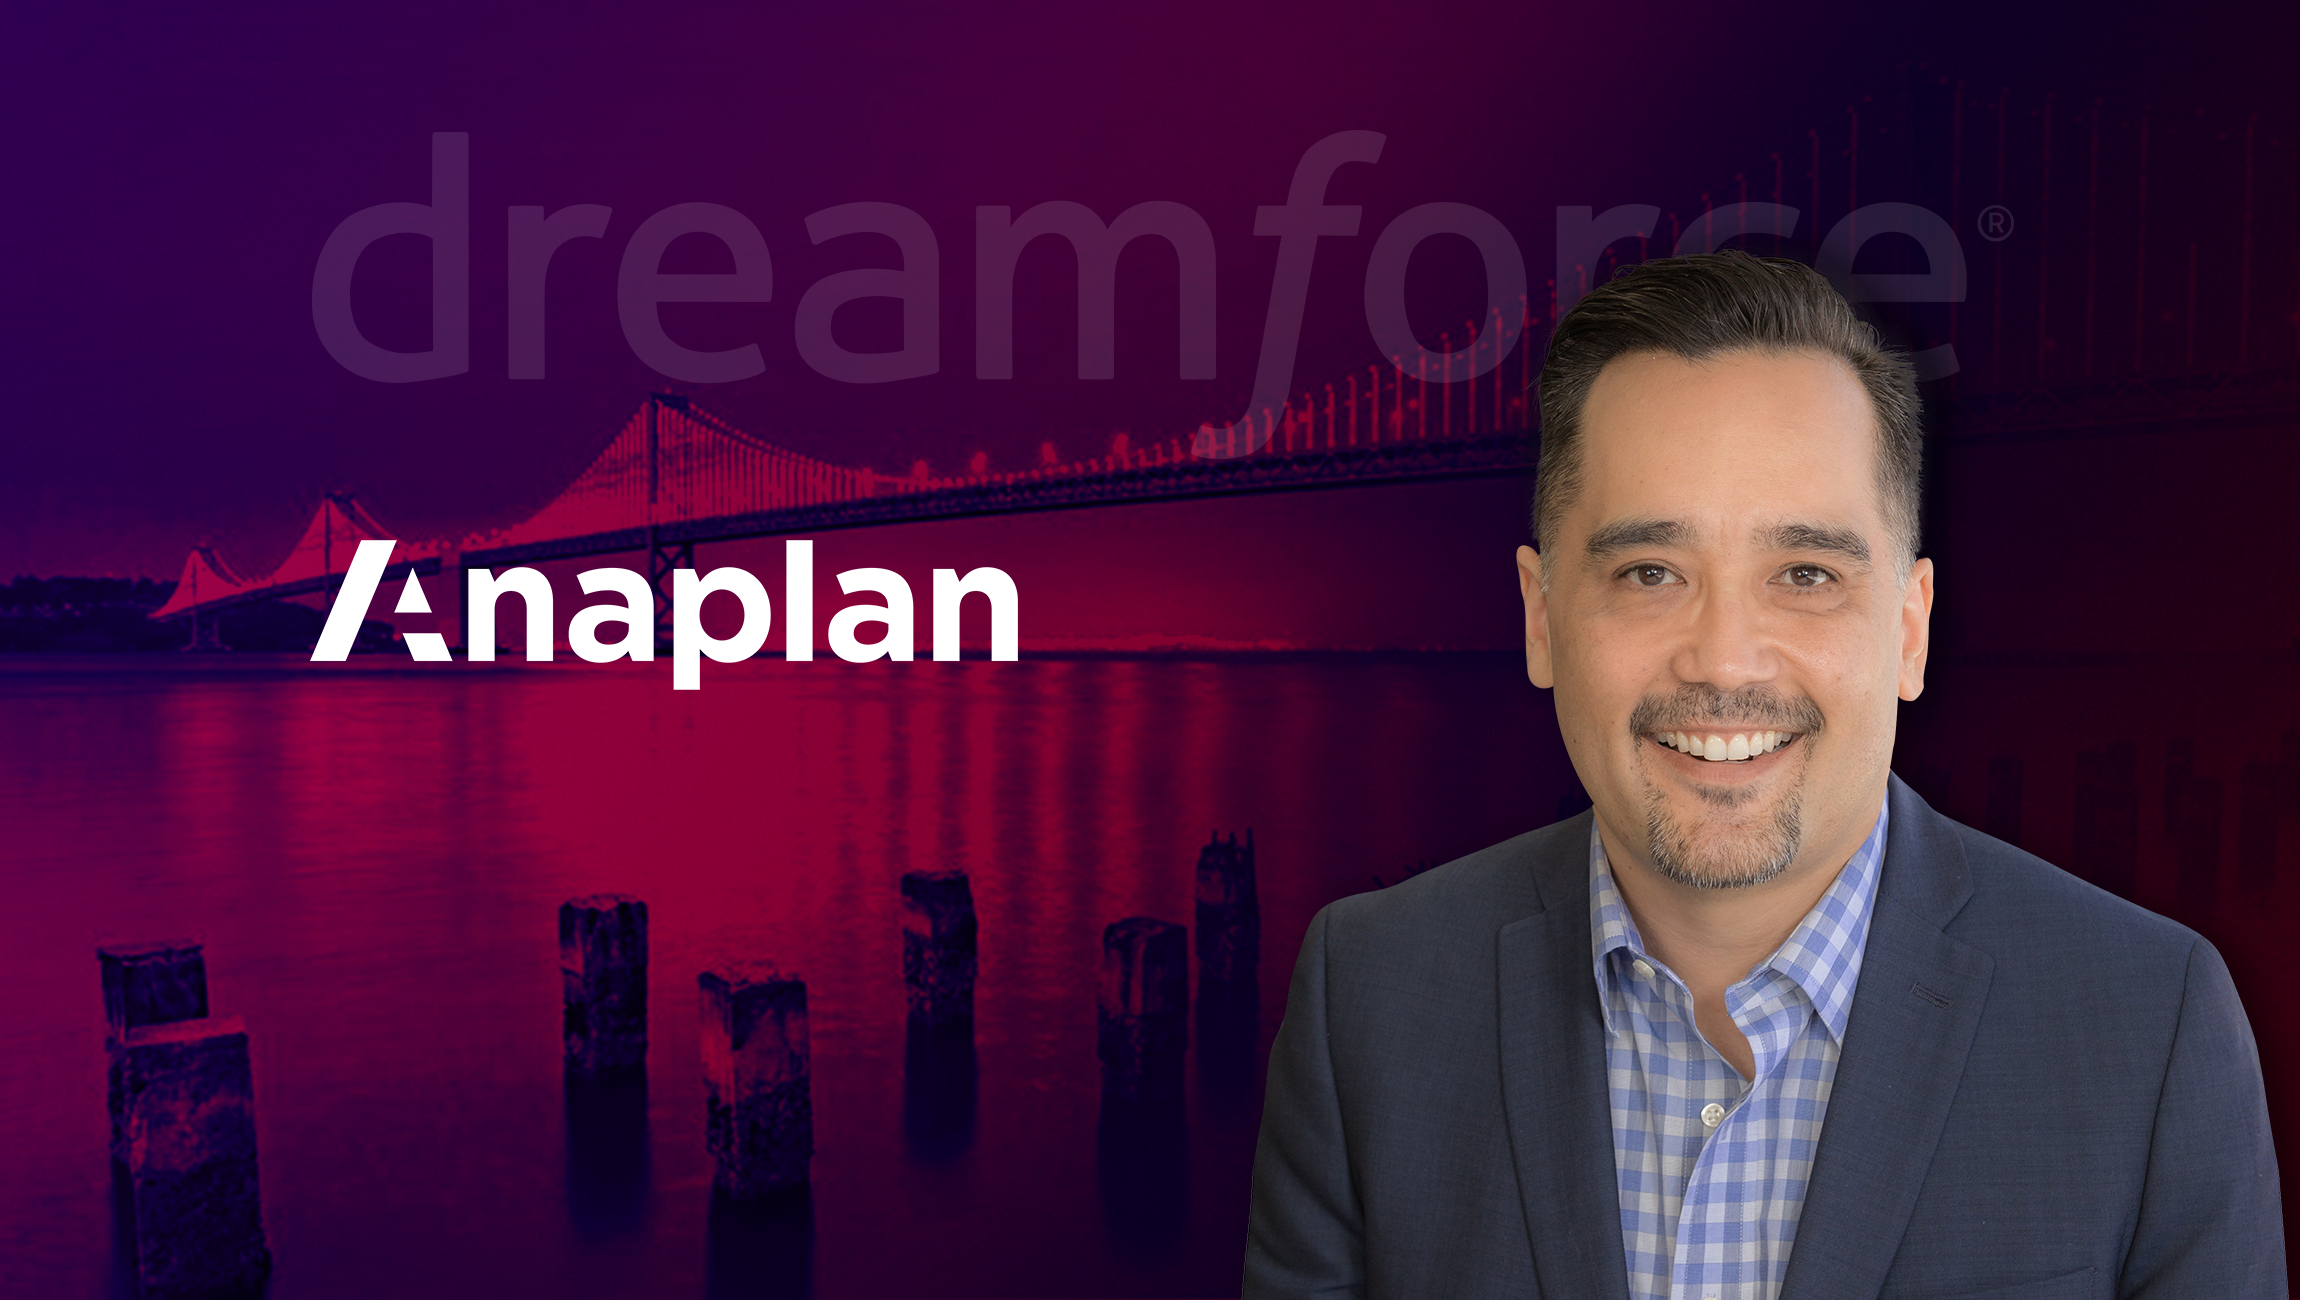 Dreamforce with Jason Loh,Global Head of Sales Solutions atAnaplan